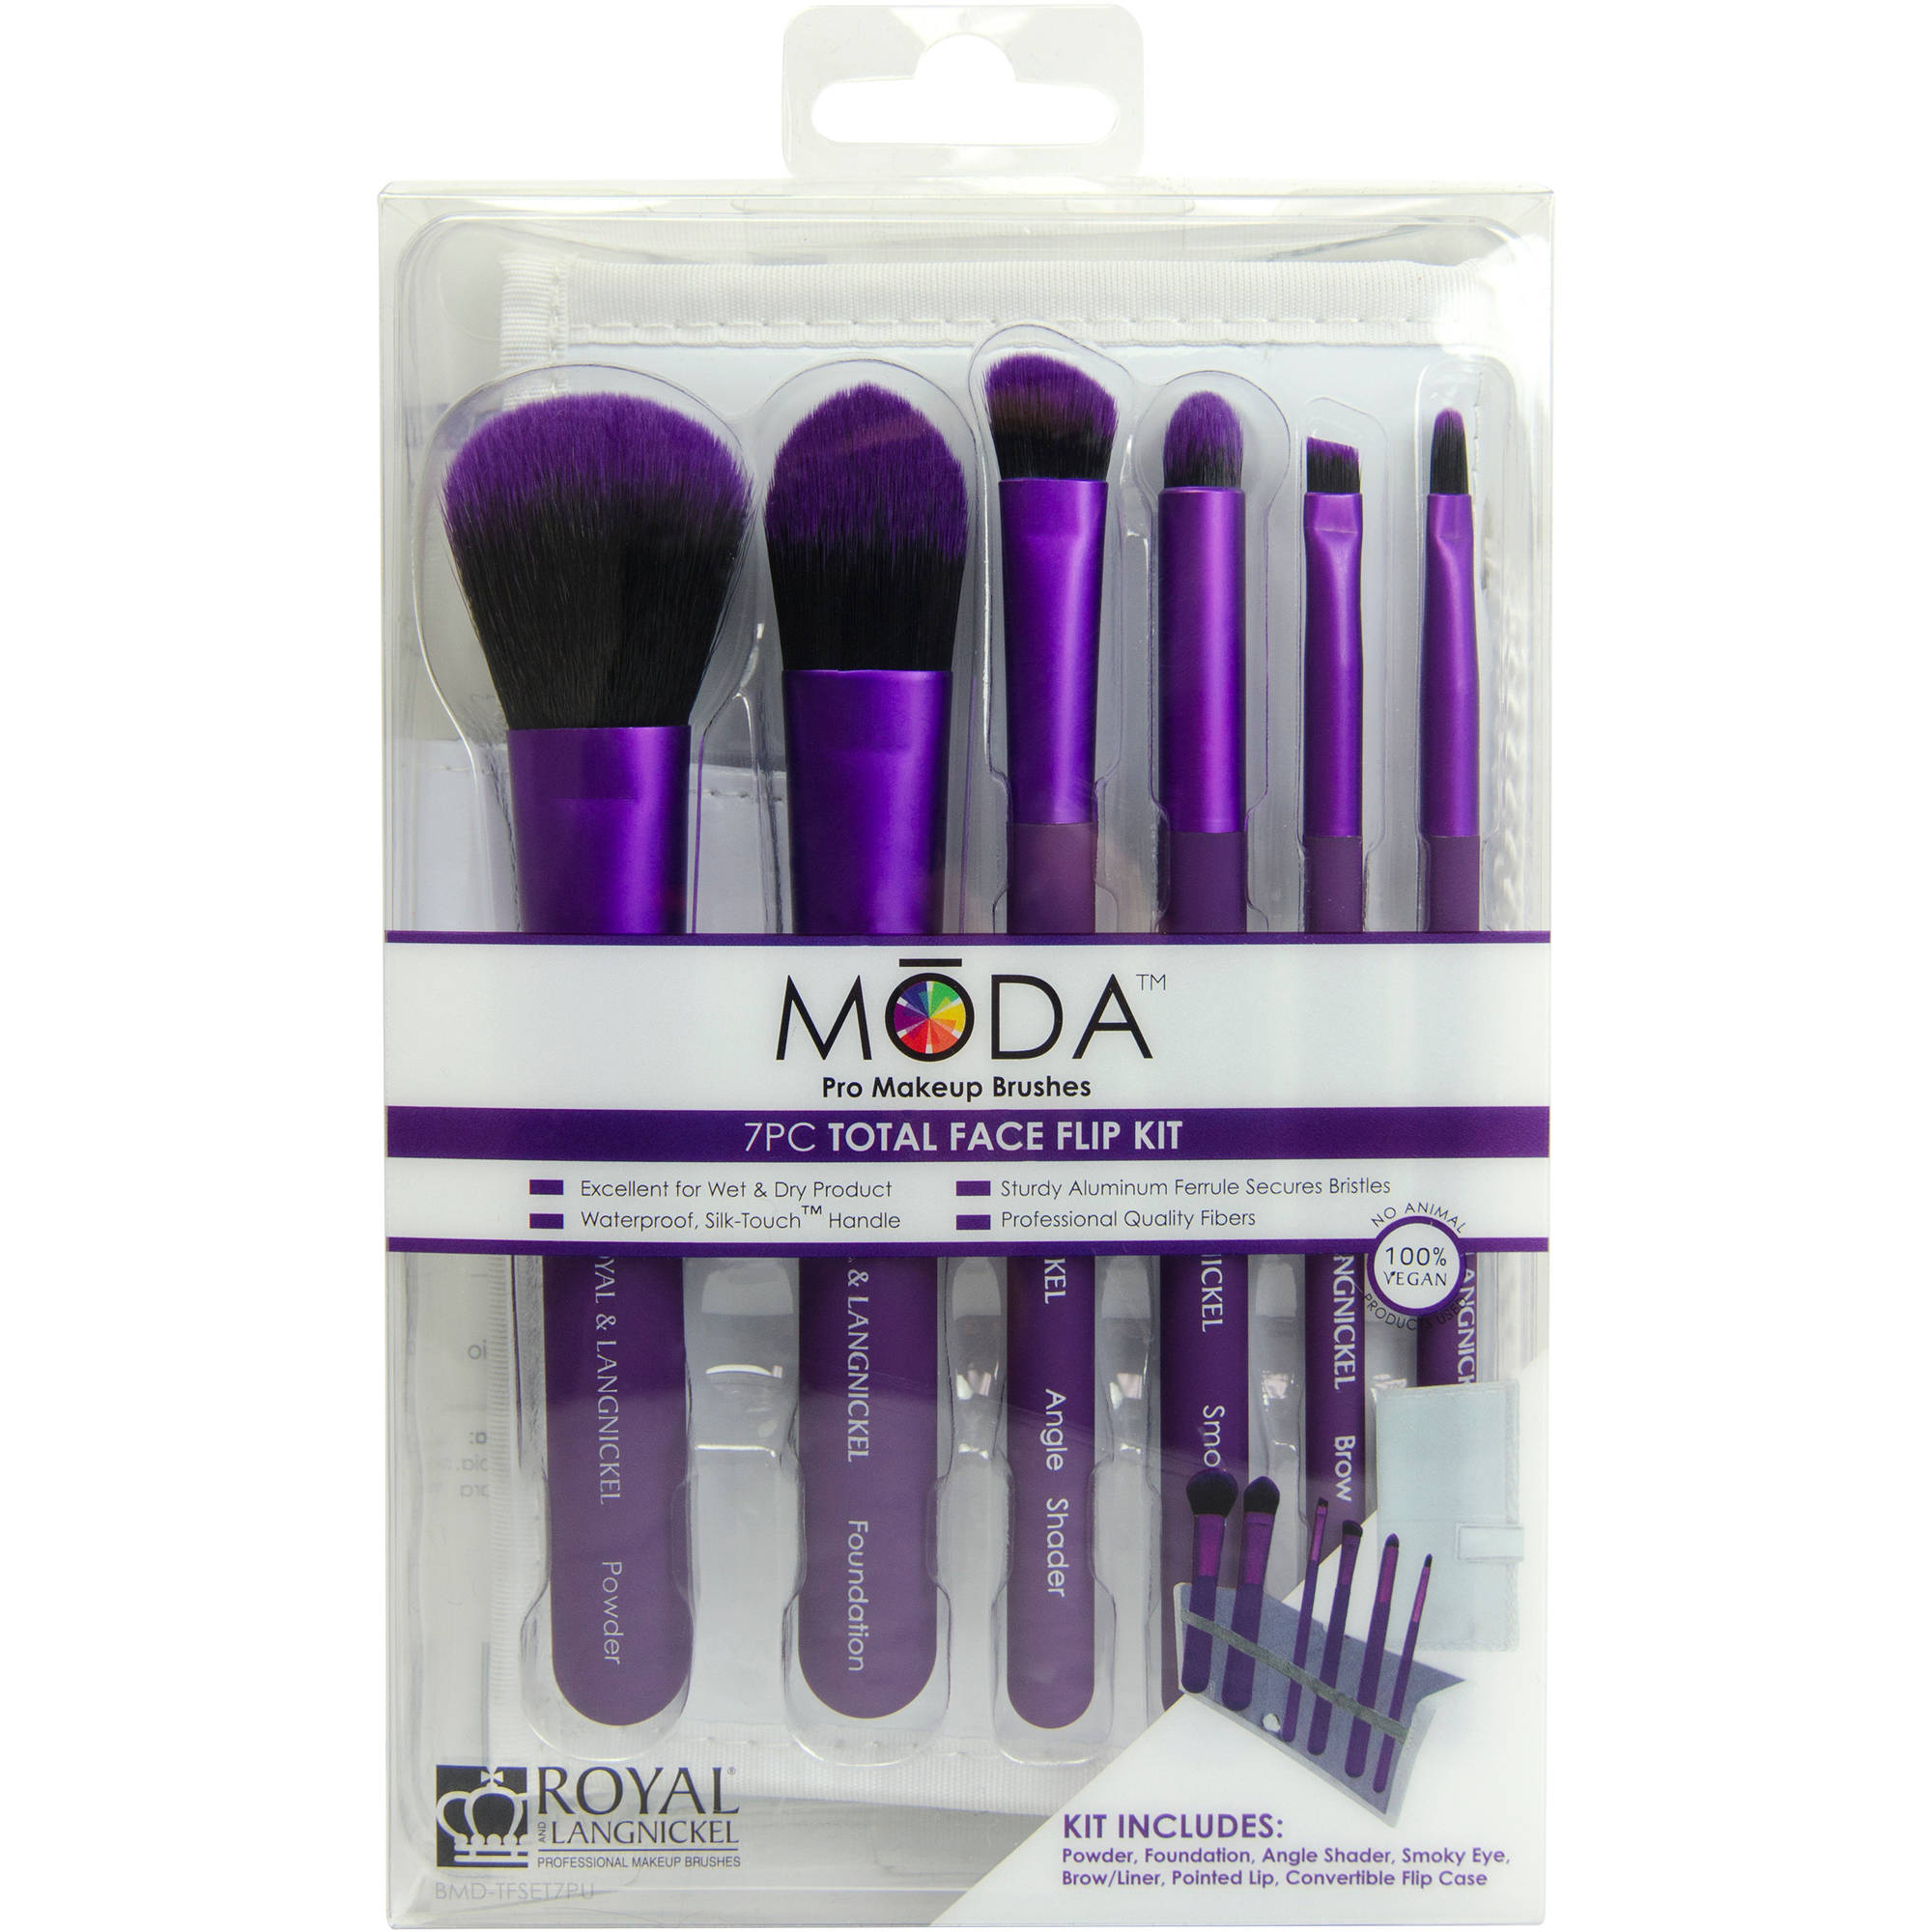 MODA Pro Makeup Brushes Total Face Flip Kit, 7 pc